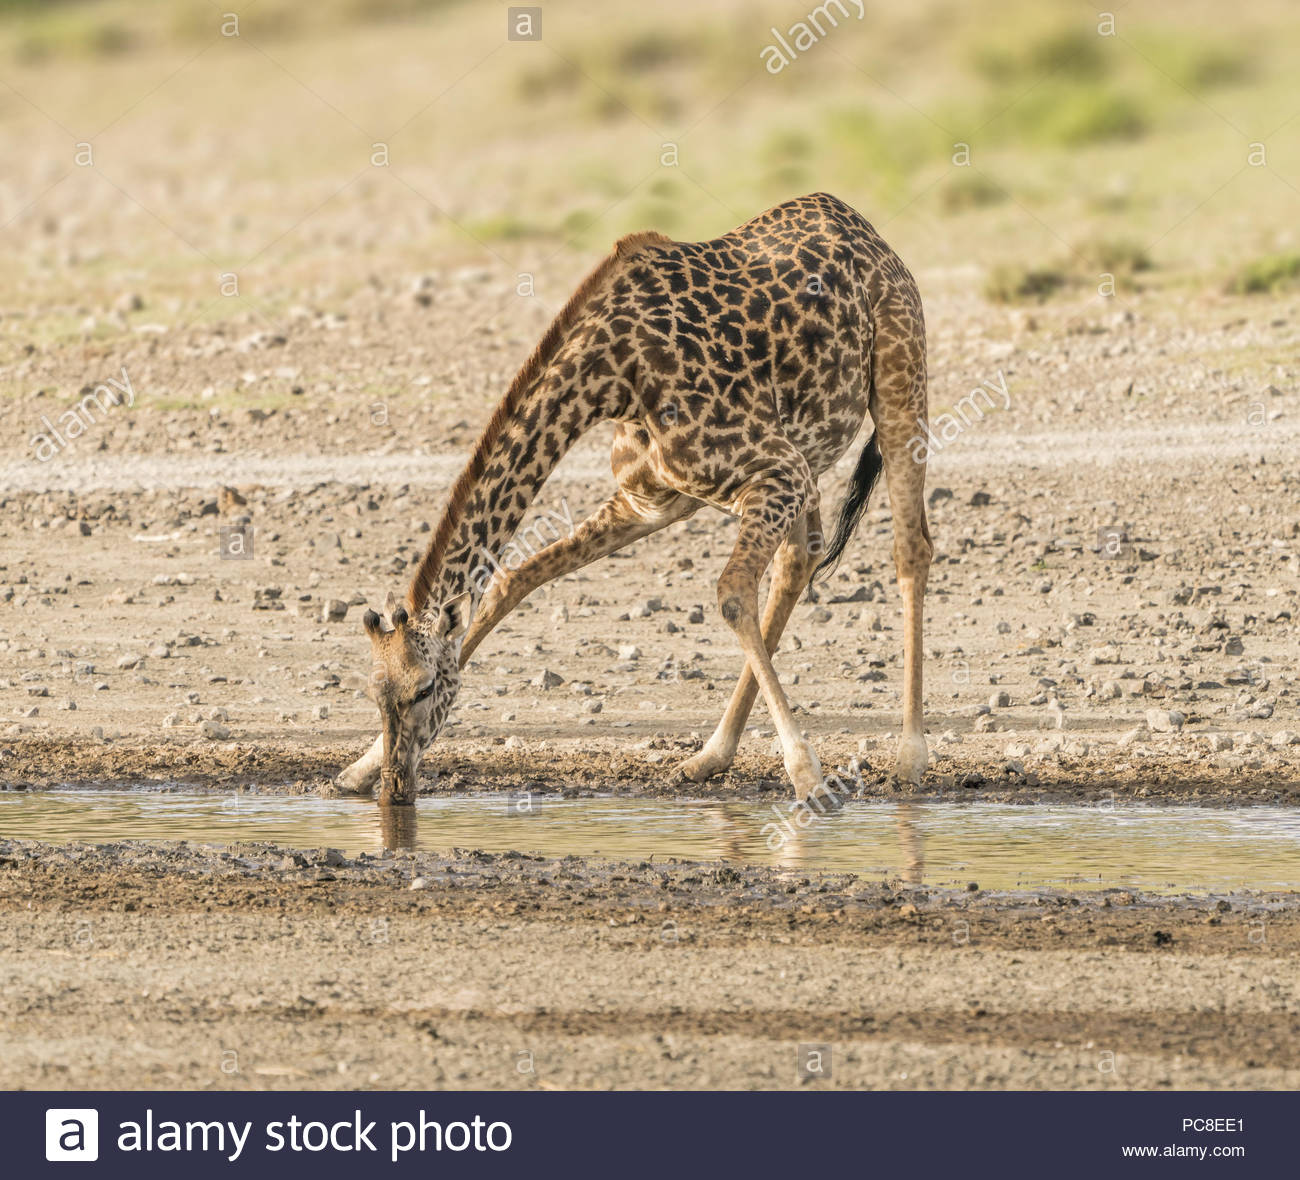 A giraffe calf crouches for a drink. - Stock Image